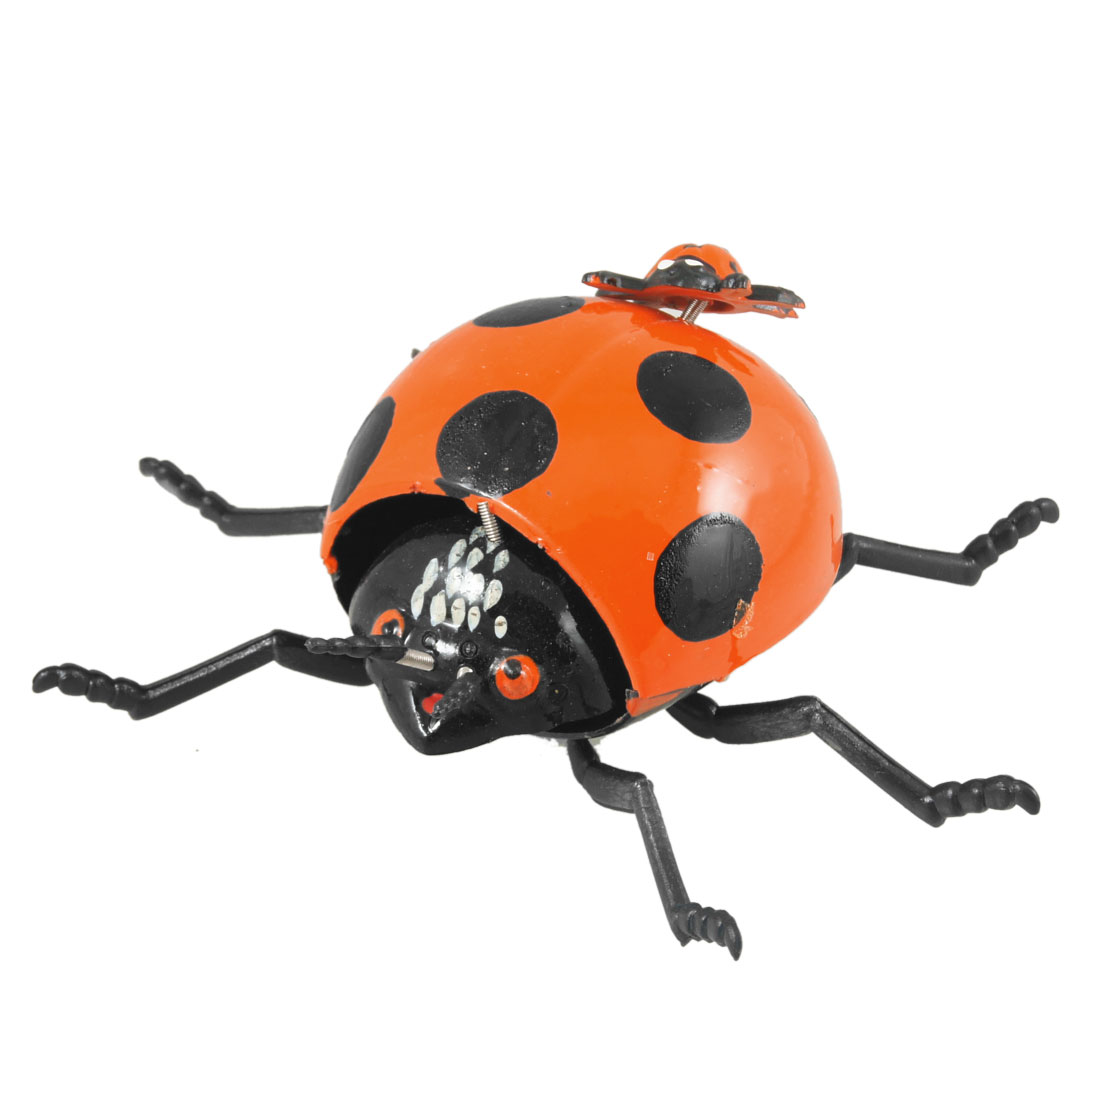 Fridge Refrigerator Ornament Ladybird Shape Magnetic Stickers Orange Black